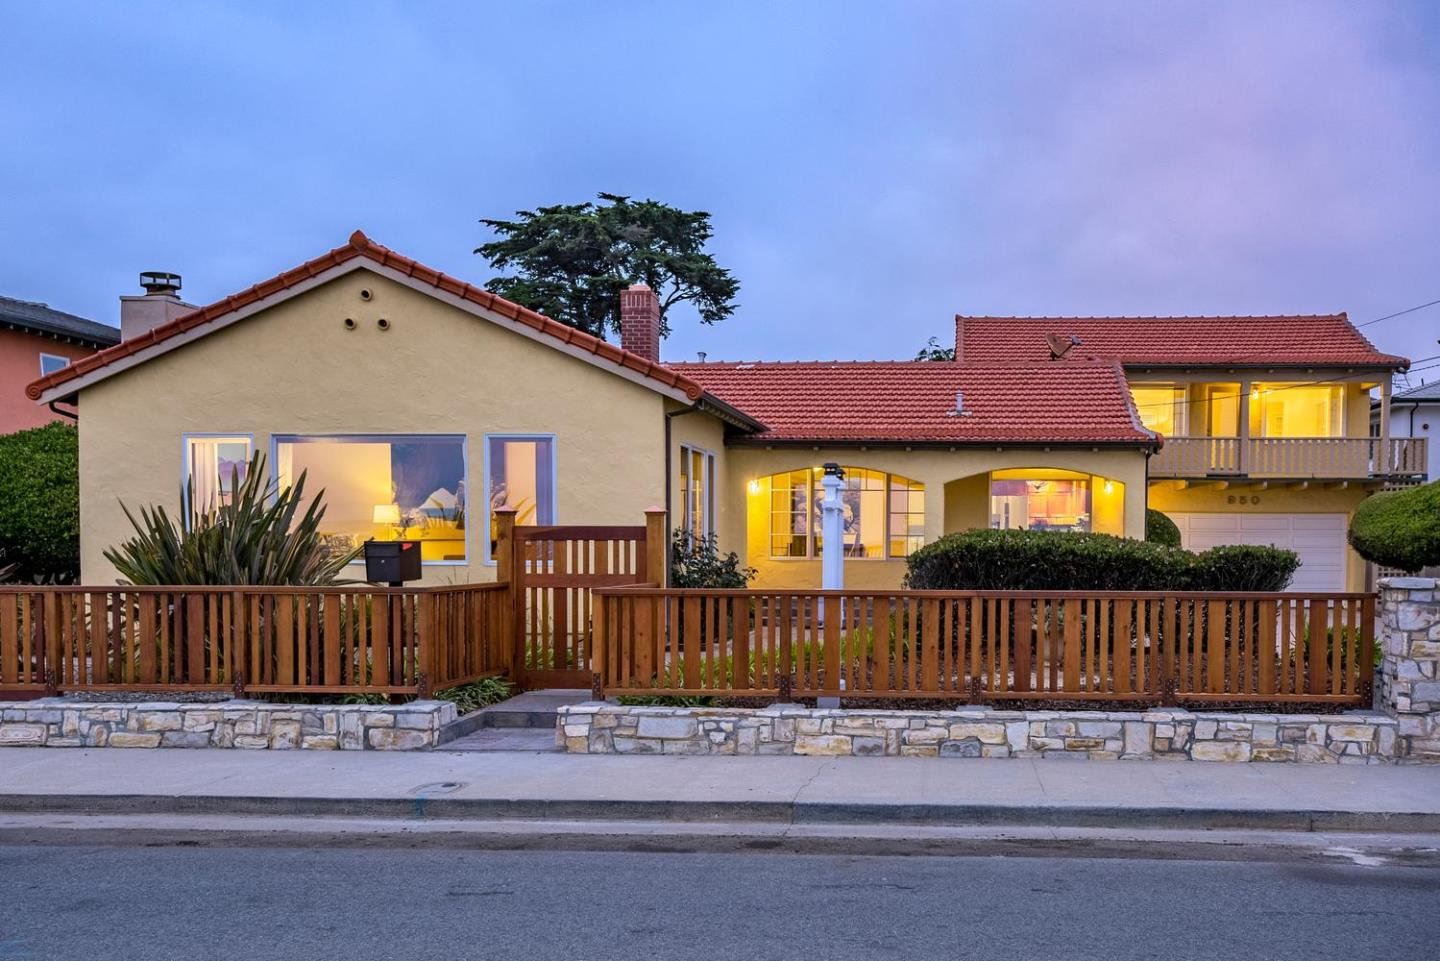 With Views from Mitchell's Cove to Monterey, here is a once in a lifetime opportunity to live on the premiere ocean front drive in Santa Cruz!  This remodeled 2800 sf home has 3 bedrooms and 3 1/2 half baths and is located on a double rarely available 13,000 sf lot.  Currently the utility poles are being put underground for unobstructed views!!!  Custom built with flexible floor plan that includes a guest suite with separate entrance & balcony. The remodeled kitchen has granite counters, stainless steel appliances and breakfast nook; perfect for morning coffee while watching the dolphins & whales. There are formal dining and living rooms with refinished hardwood floors & gas starter fireplaces overlooking the Pacific Ocean. The professionally landscaped lot has space to expand or for a cottage (buyer to verify) or pool.  With an over-sized 2 car garage & 300 sq ft. finished basement you will have room for all your bikes, boards & beach toys; the epitome of California Coastal Living!